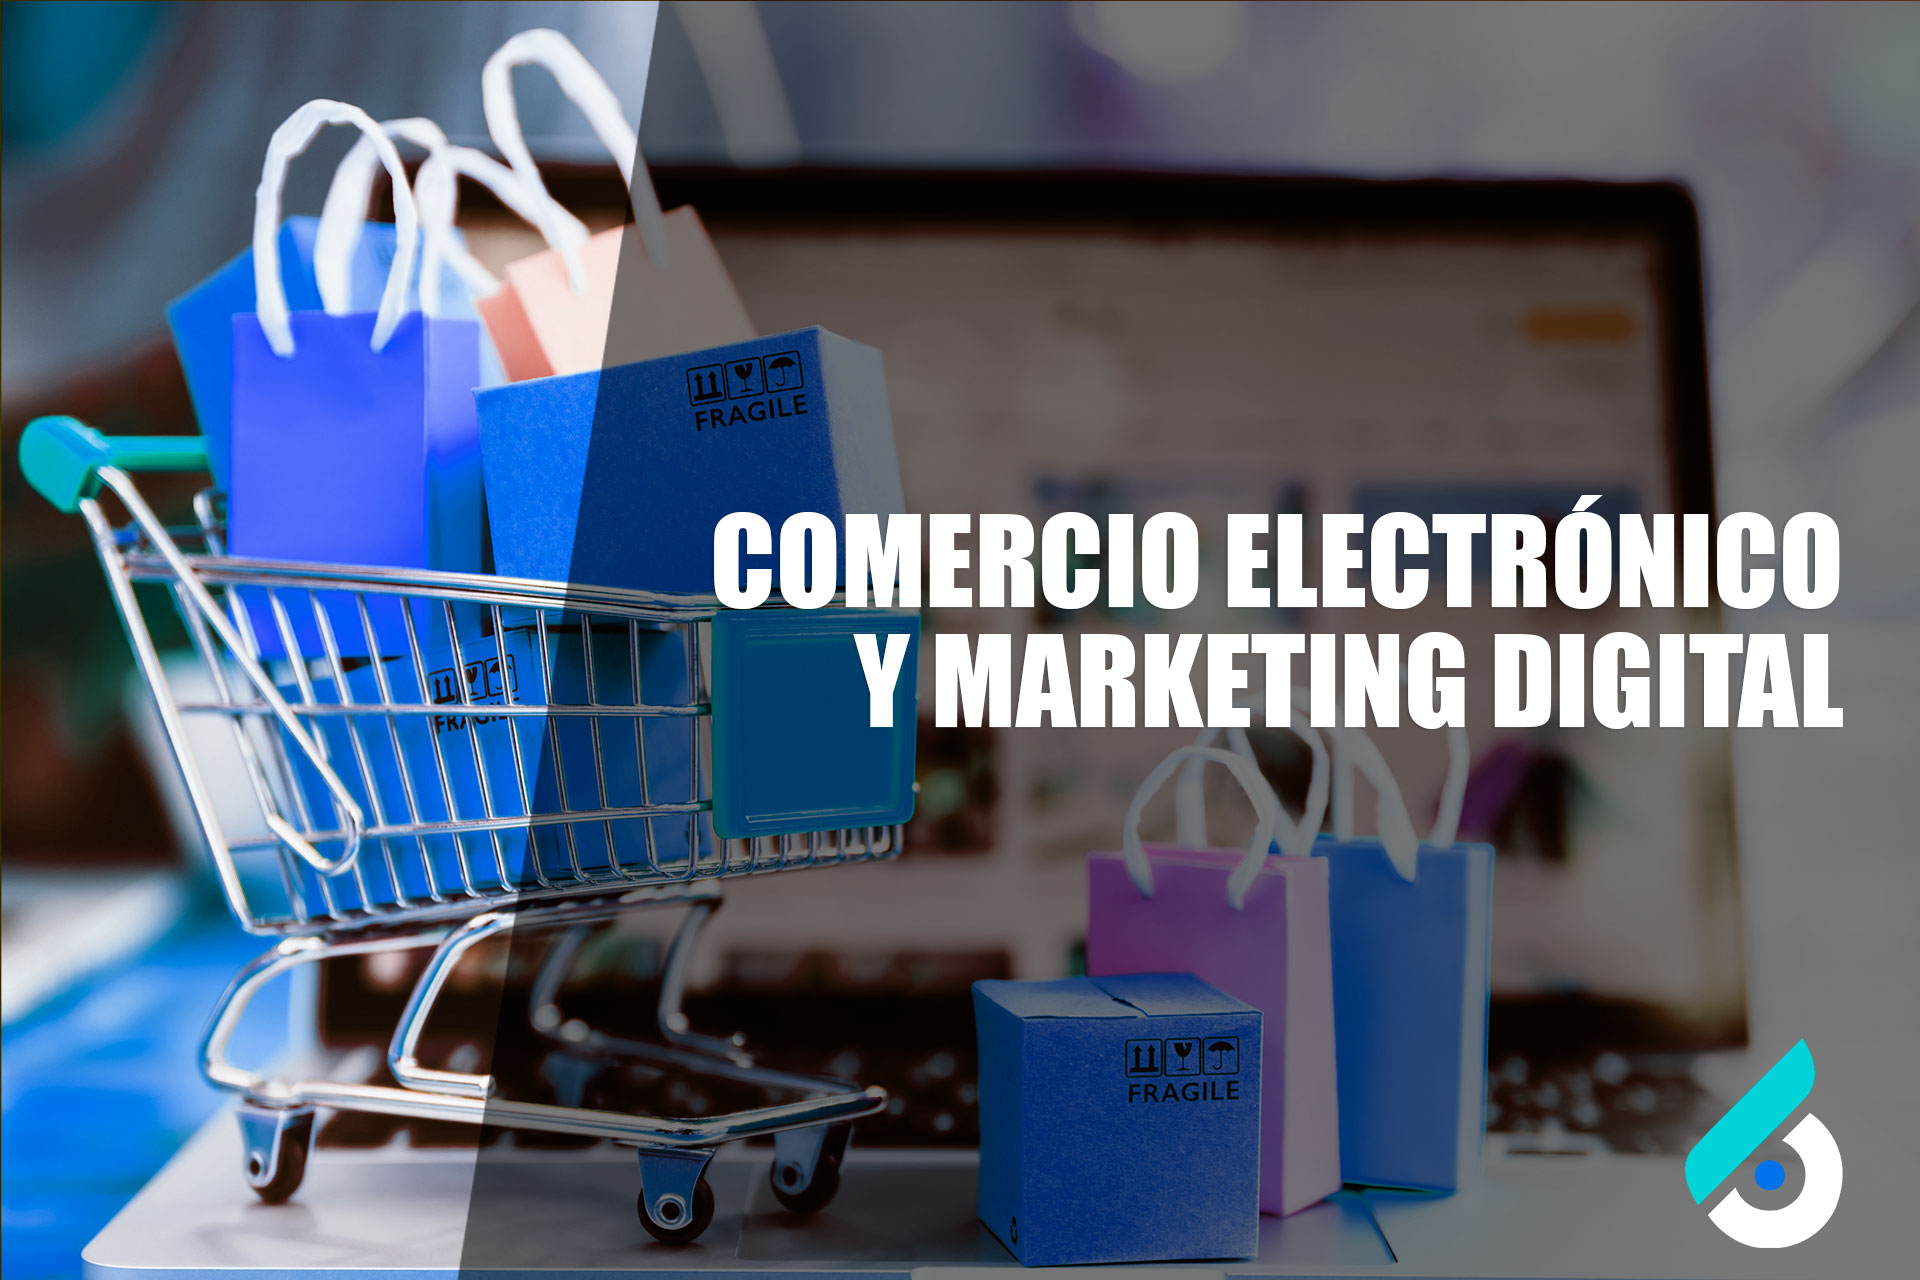 DMIPE-20-01-13-0453-1 | Comercio Electrónico y Marketing Digital